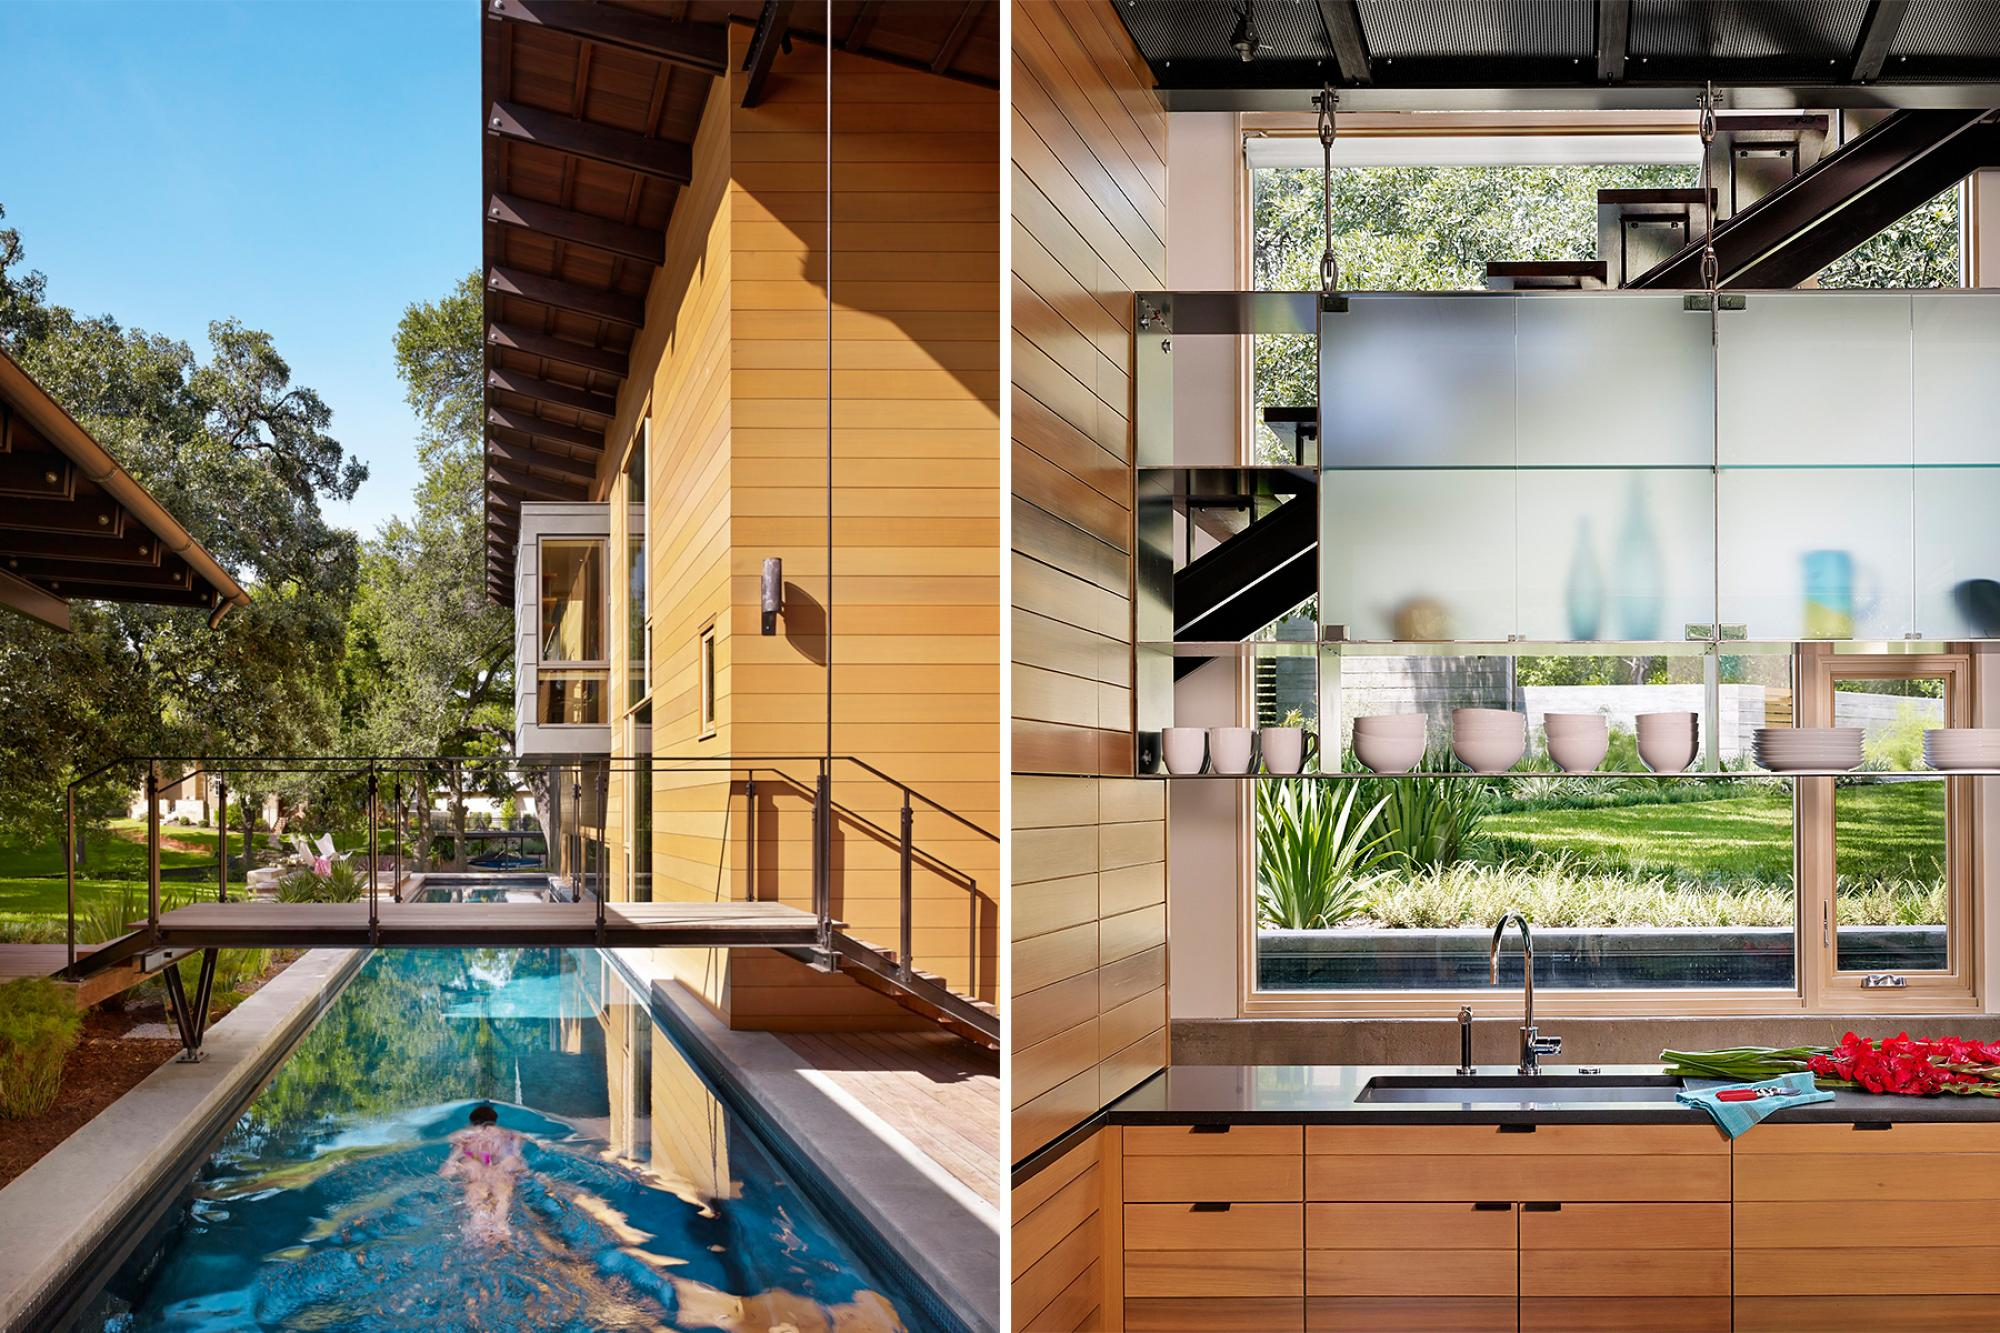 Image of the 75 foot lap pool and view from kitchen looking through the metal and glass shelves out to the pool